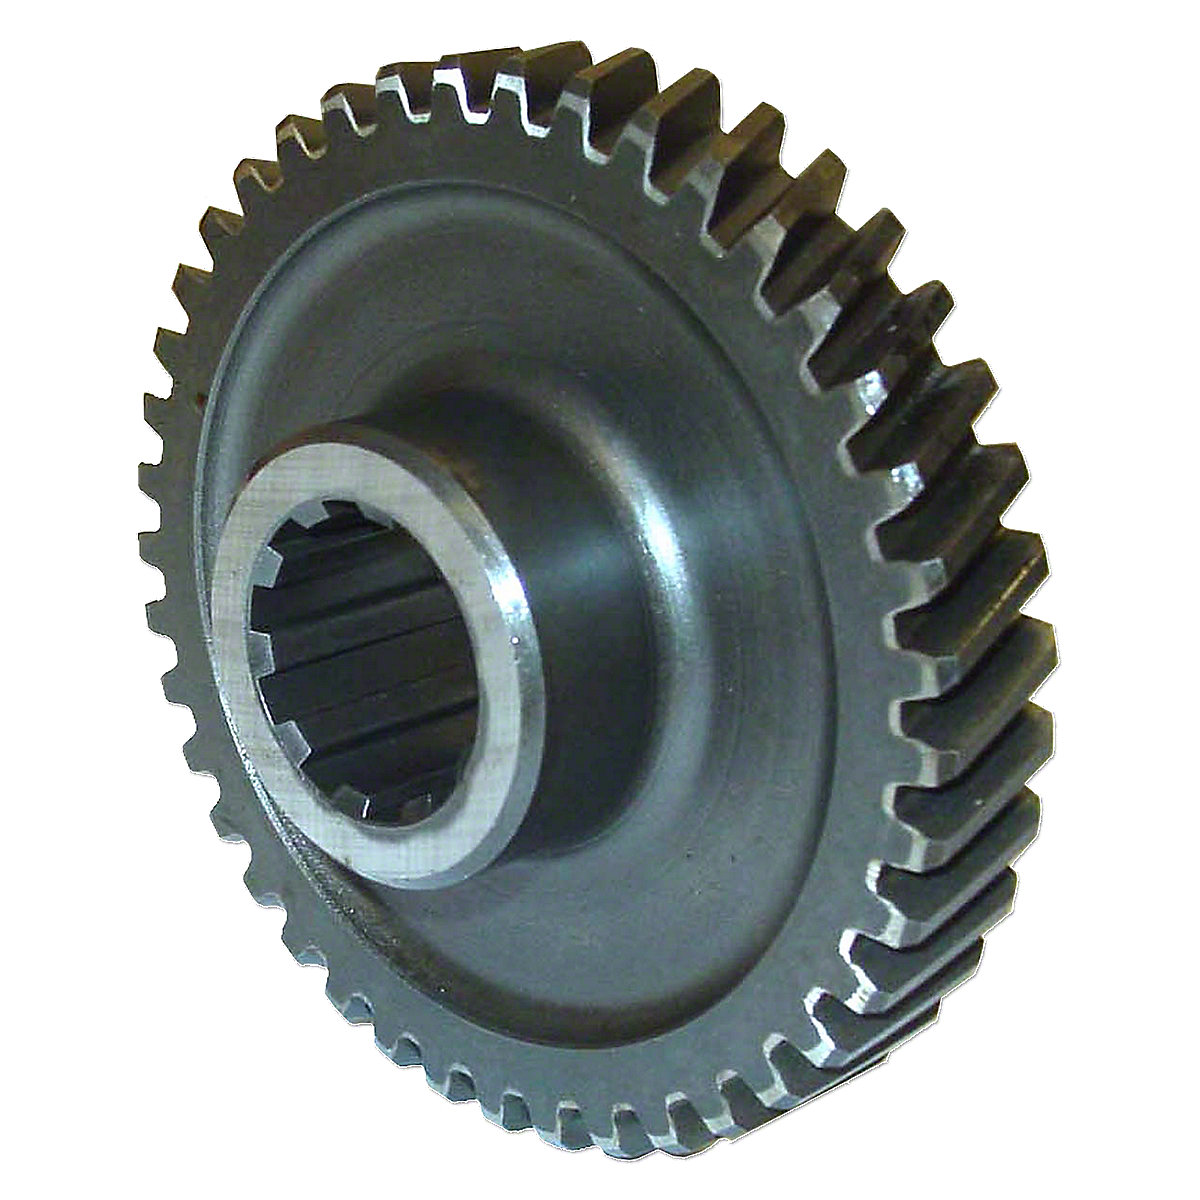 Main Shaft Drive Gear For Allis Chalmers: G.